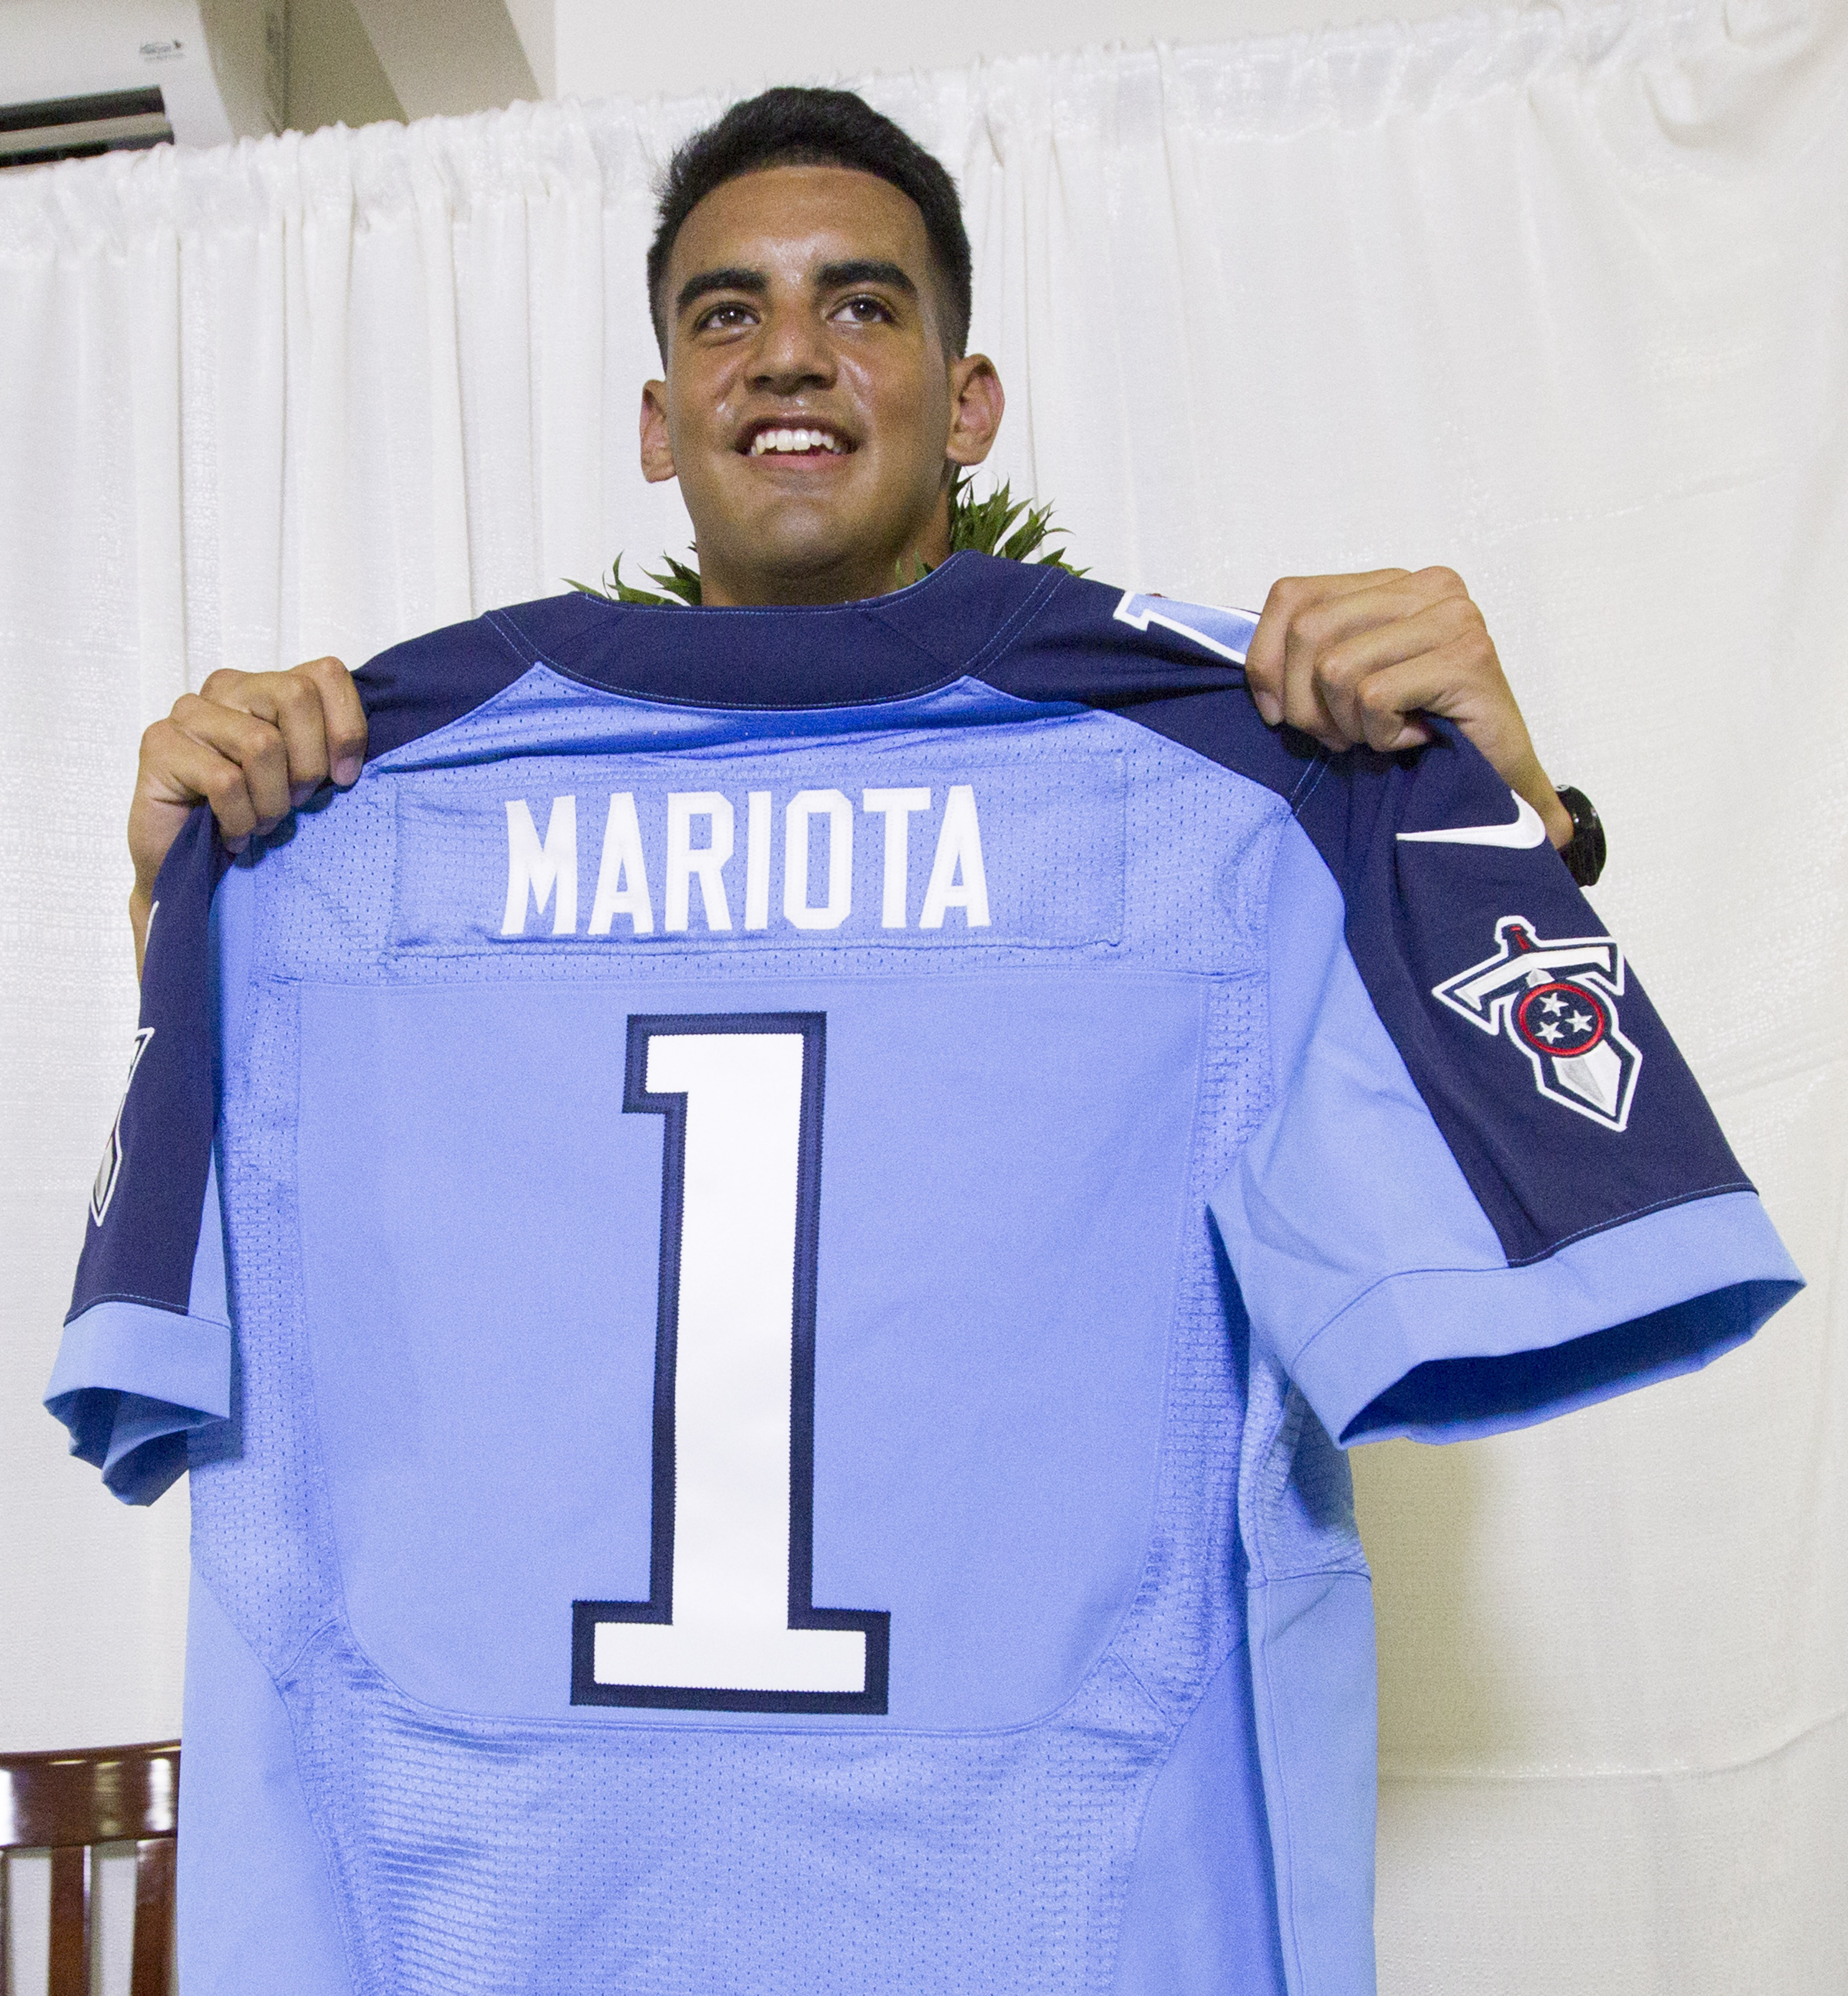 Former Oregon quarterback Marcus Mariota holds up his Tennessee Titians jersey for the media after being selected in the first round with the second pick by the Tennessee Titans on NFL Draft Day Thursday, April 30, 2015, in Honolulu. Mariota along with hi